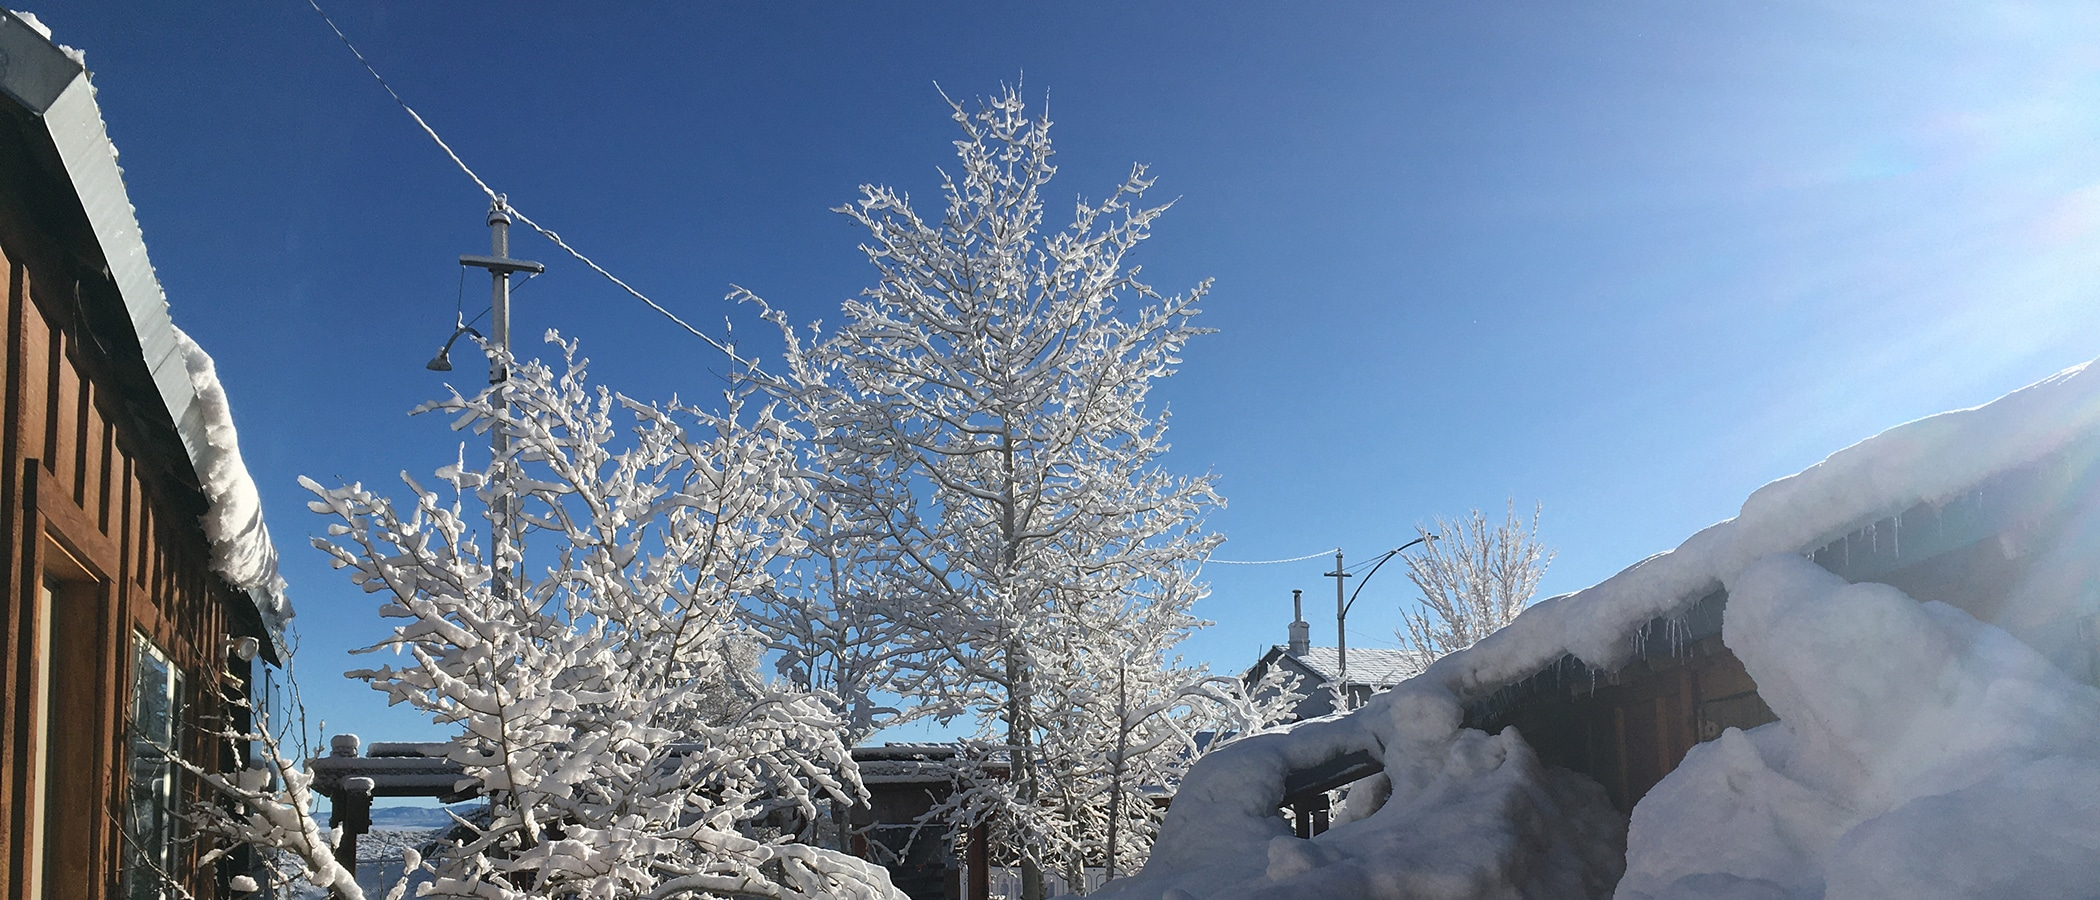 Snow covered trees against a clear blue sky.